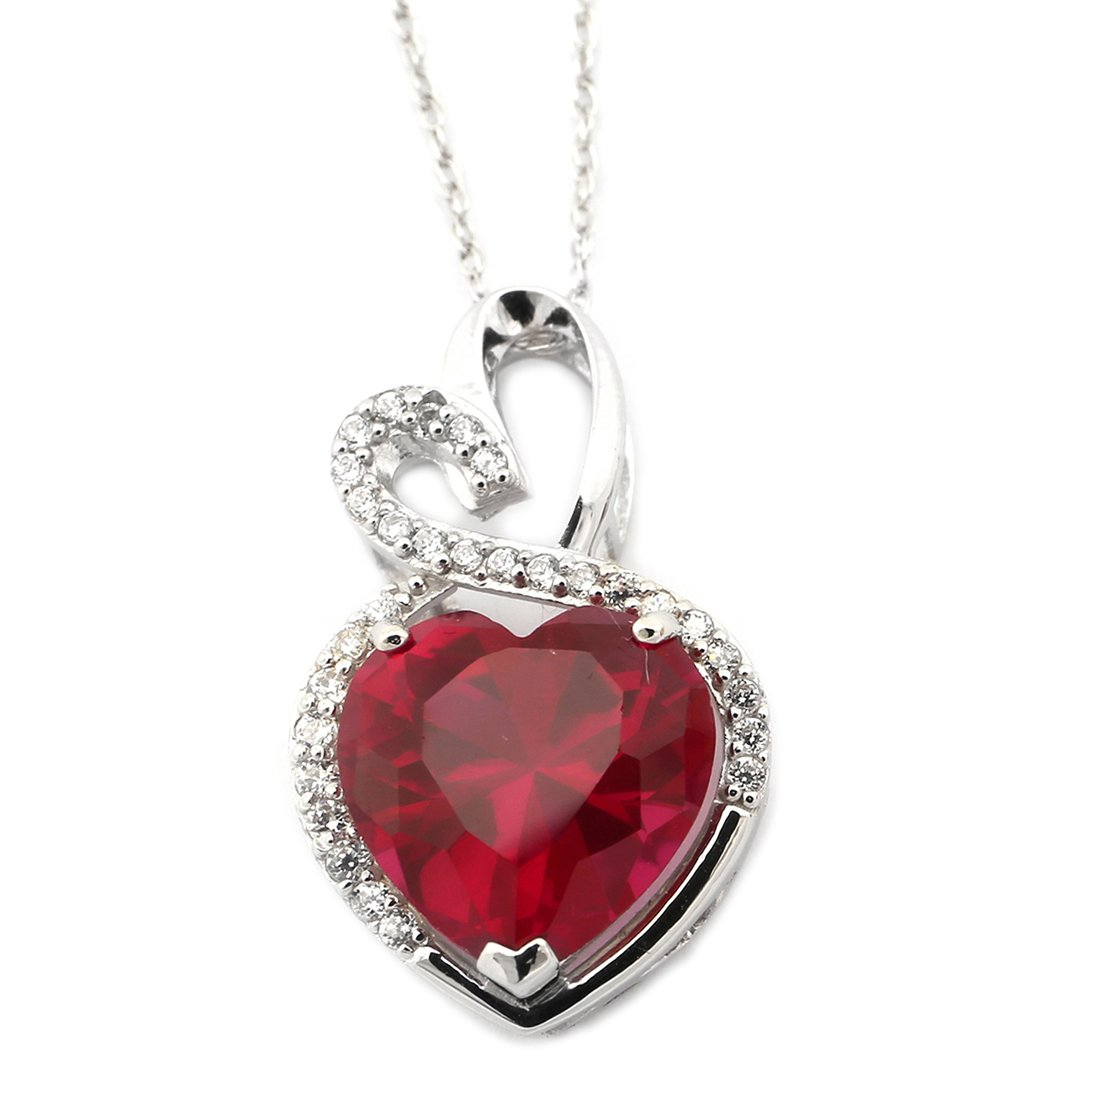 14k Yellow or White Gold Simulated Ruby and Cubic Zirconia Double Heart Halo Pendant Necklace by